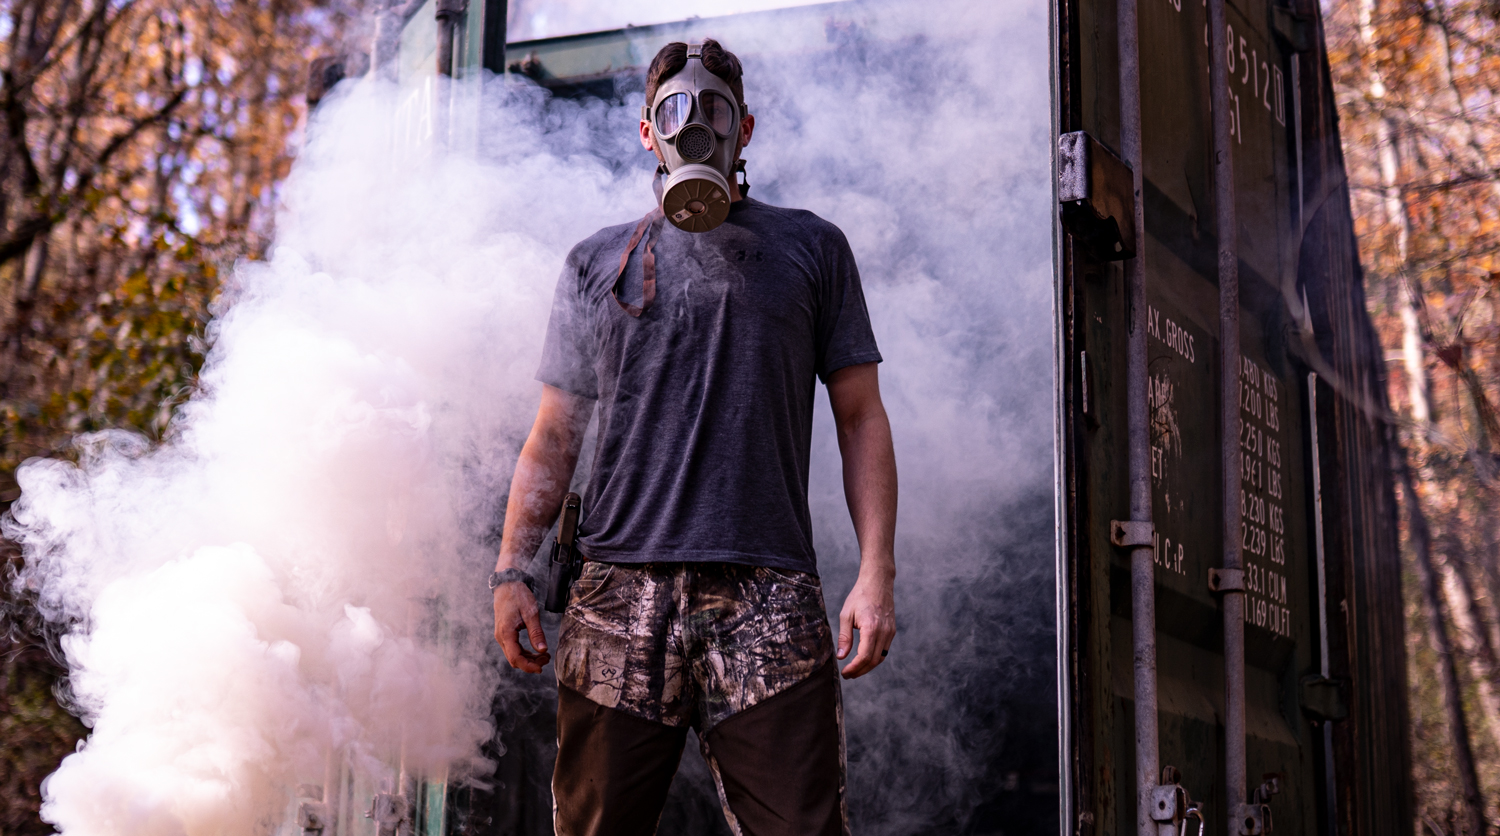 smoke all around author wearing a gas mask